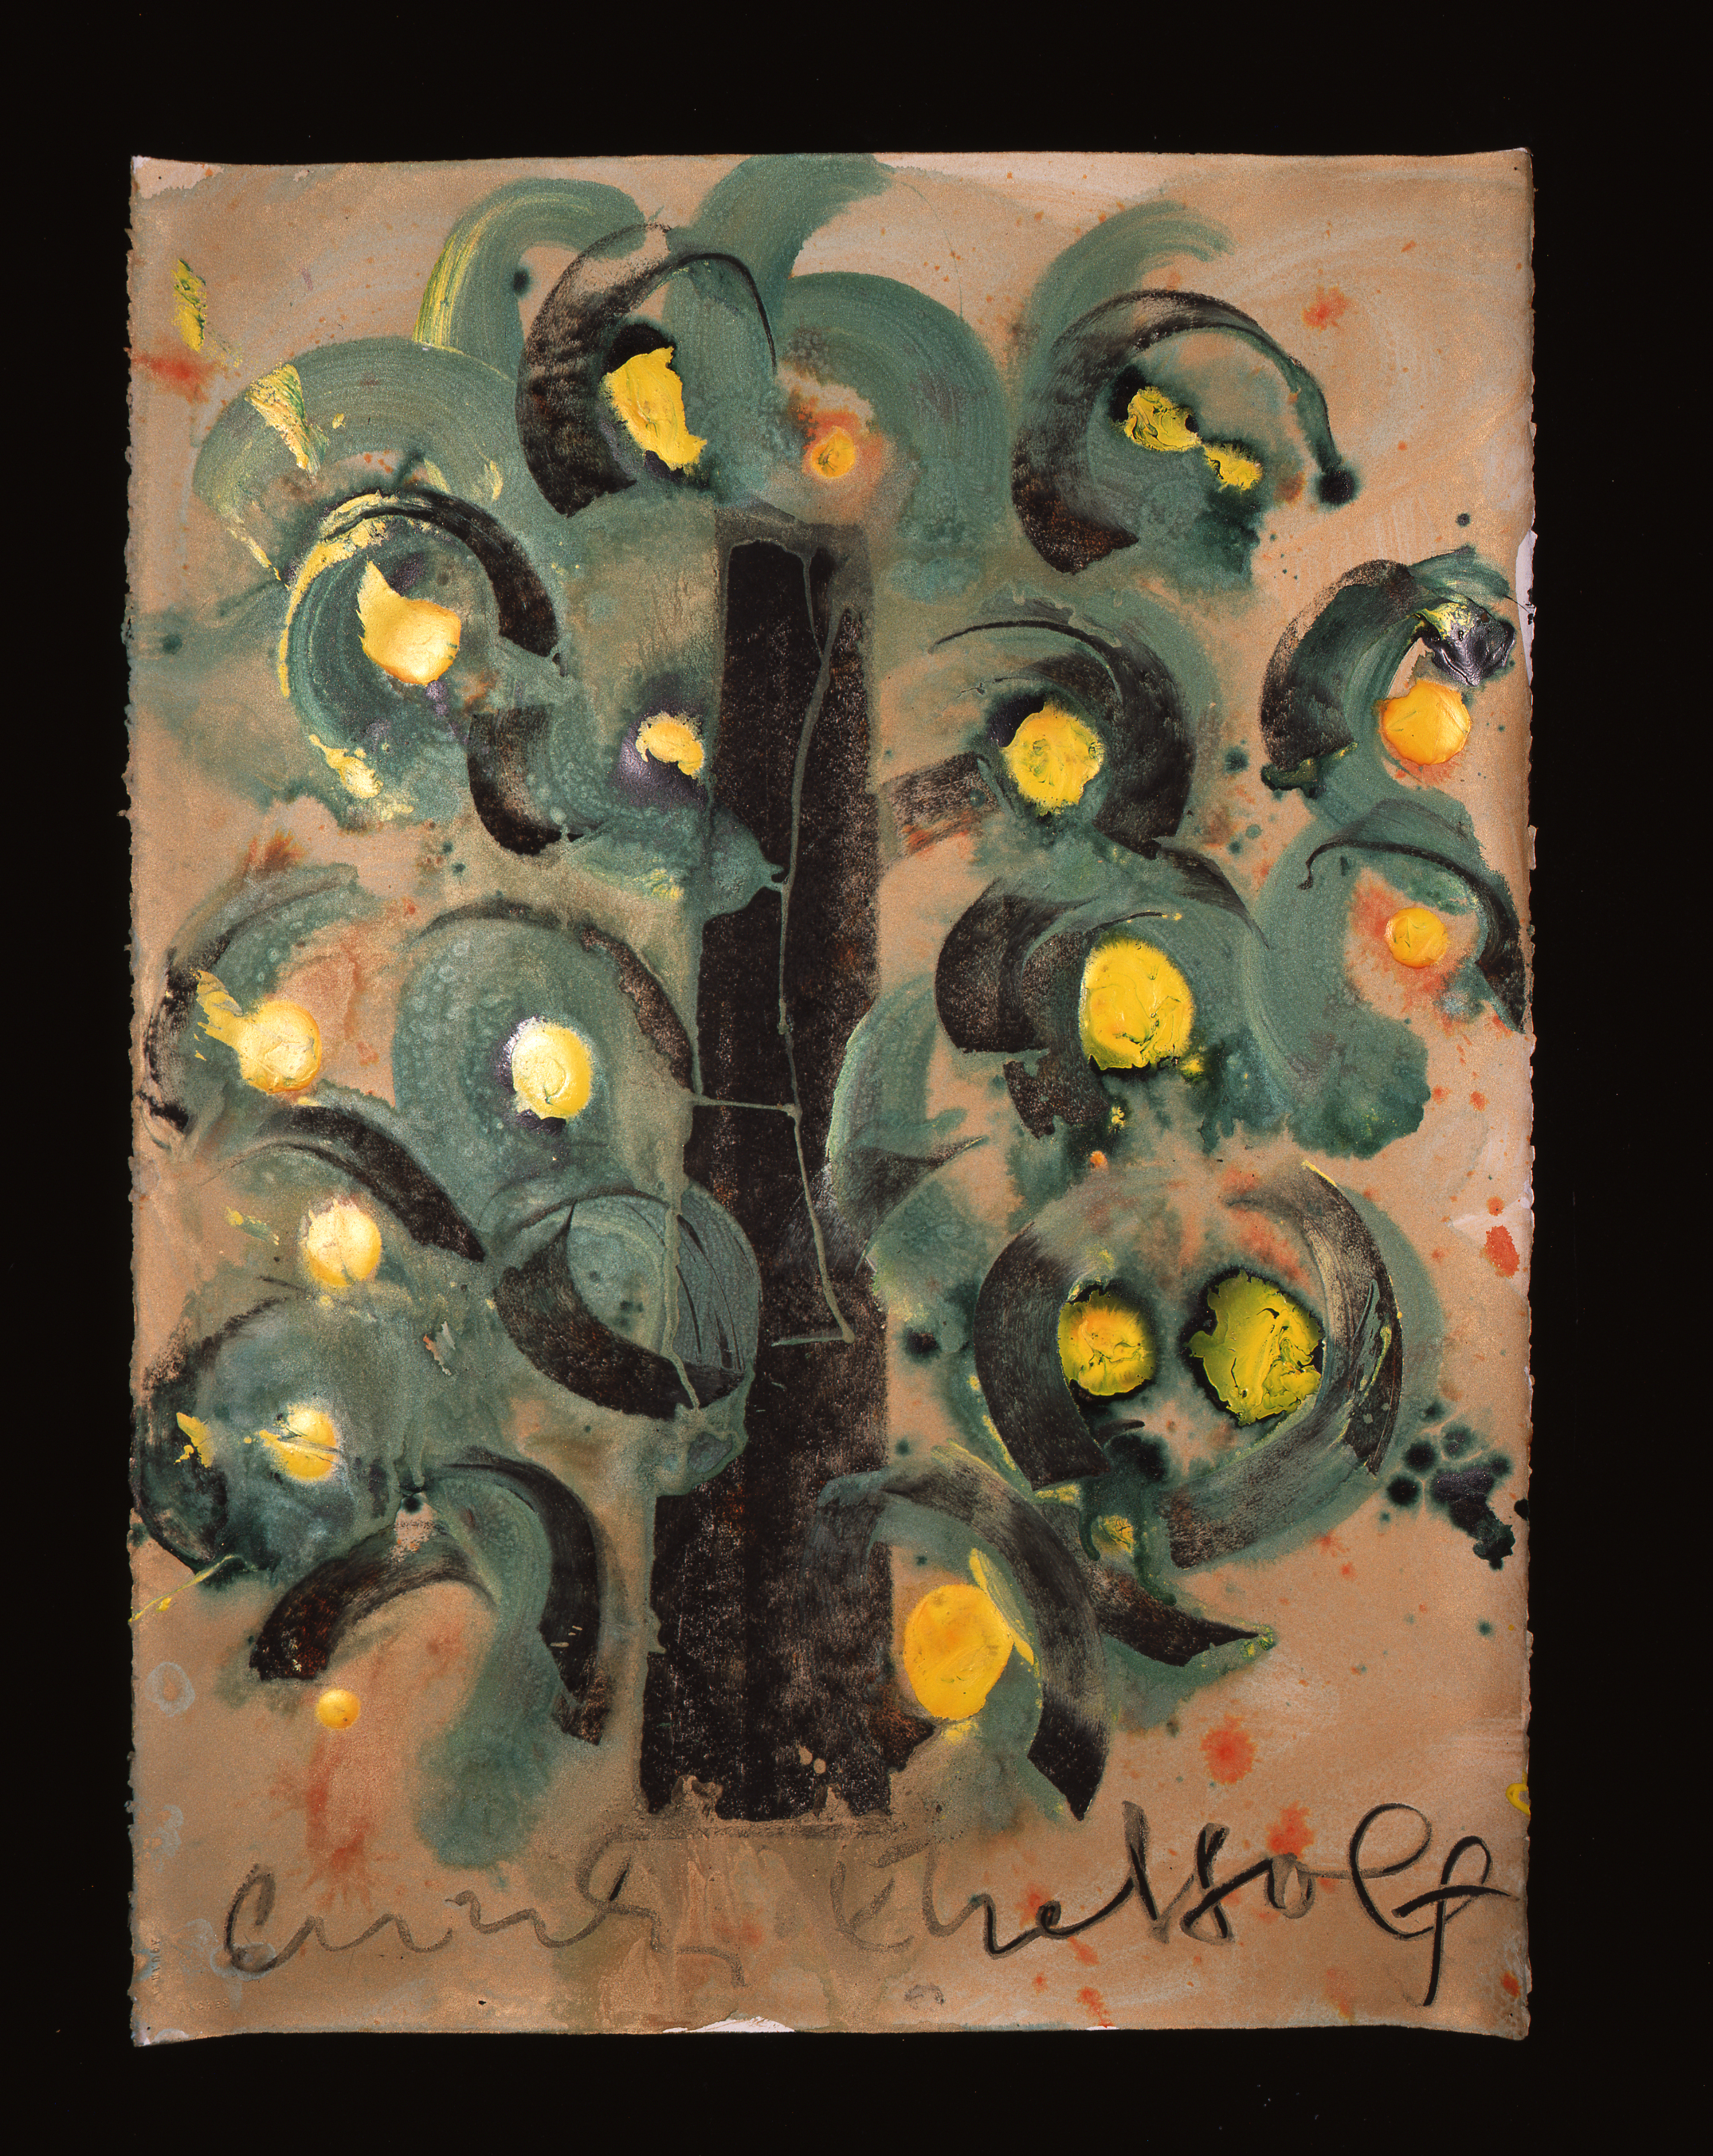 Dale Chihuly, Ebeltoft Drawing, (1991, mixed media on paper, 30 x 22 inches), DC.355